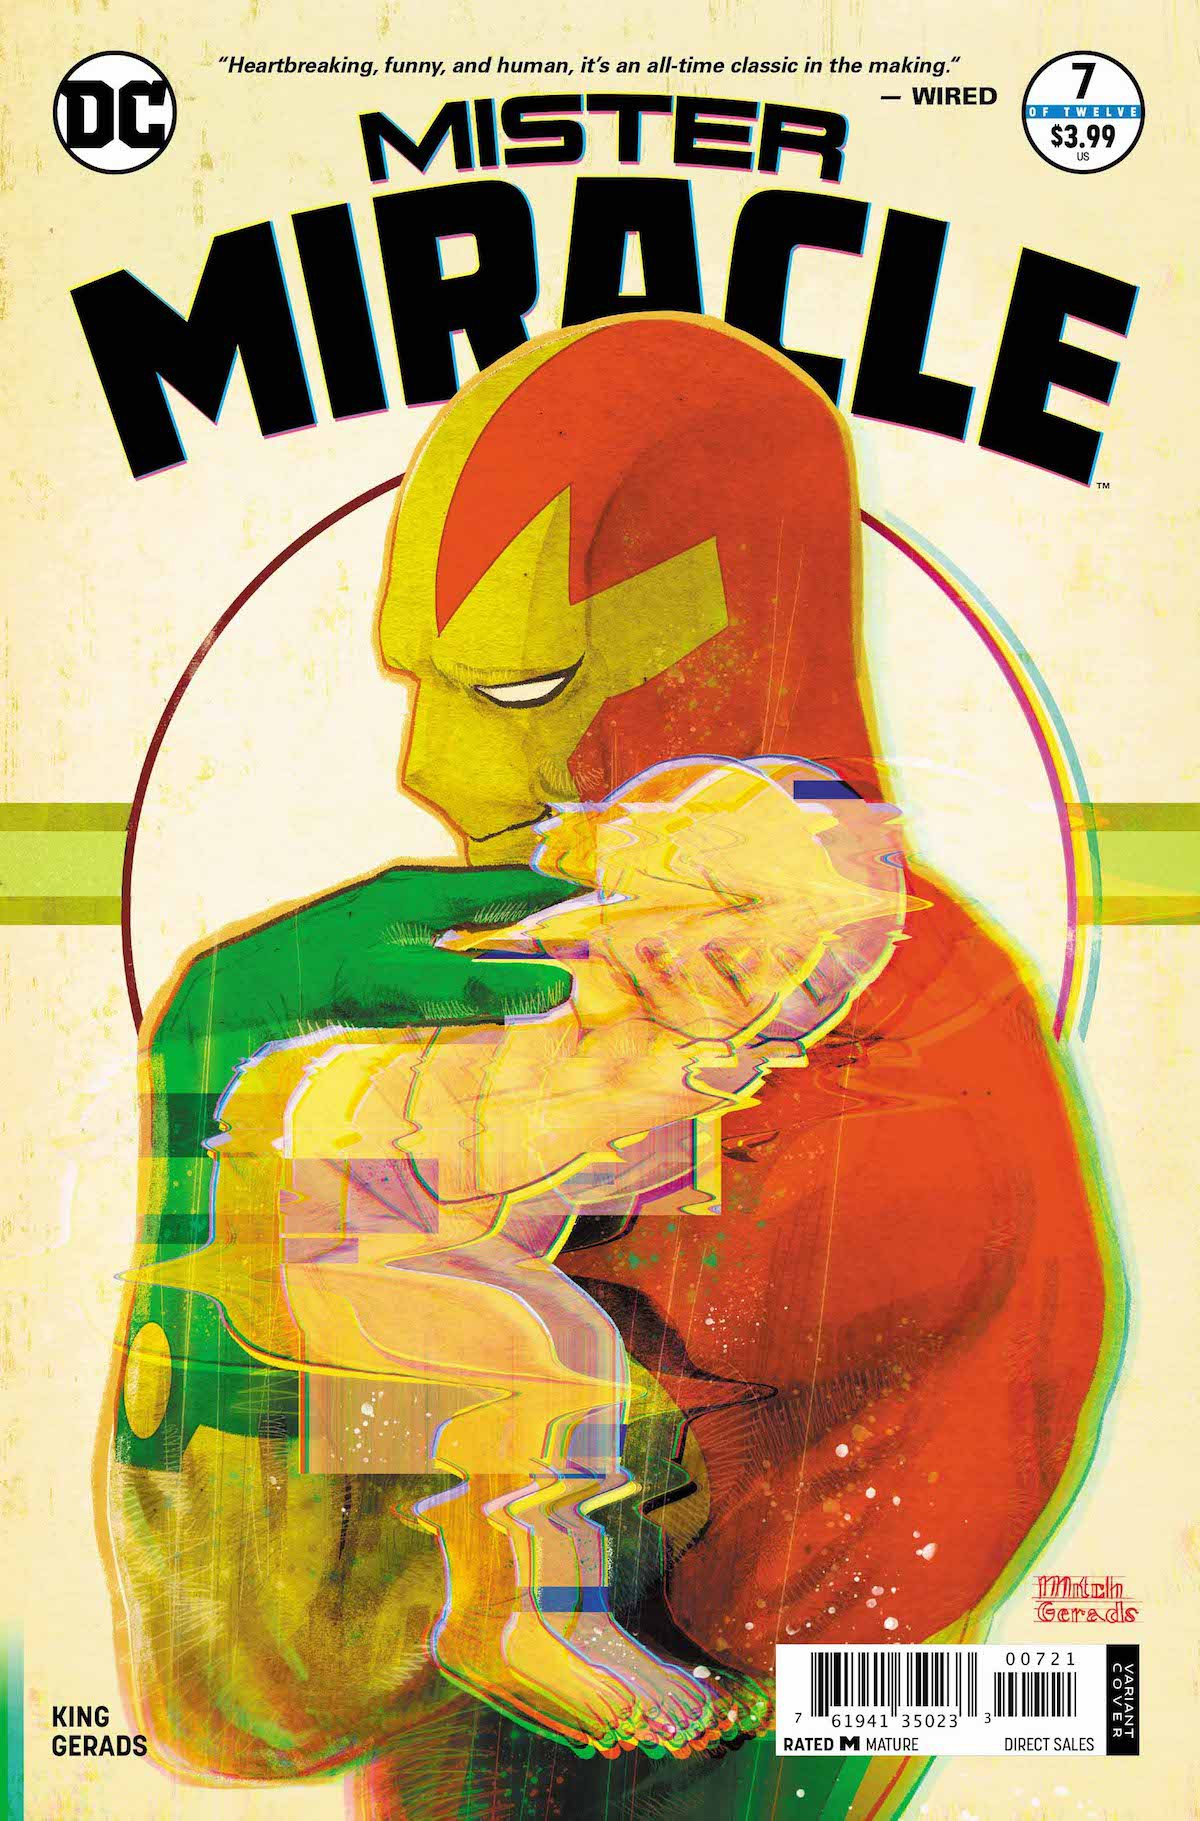 Mister Miracle #7 variant cover